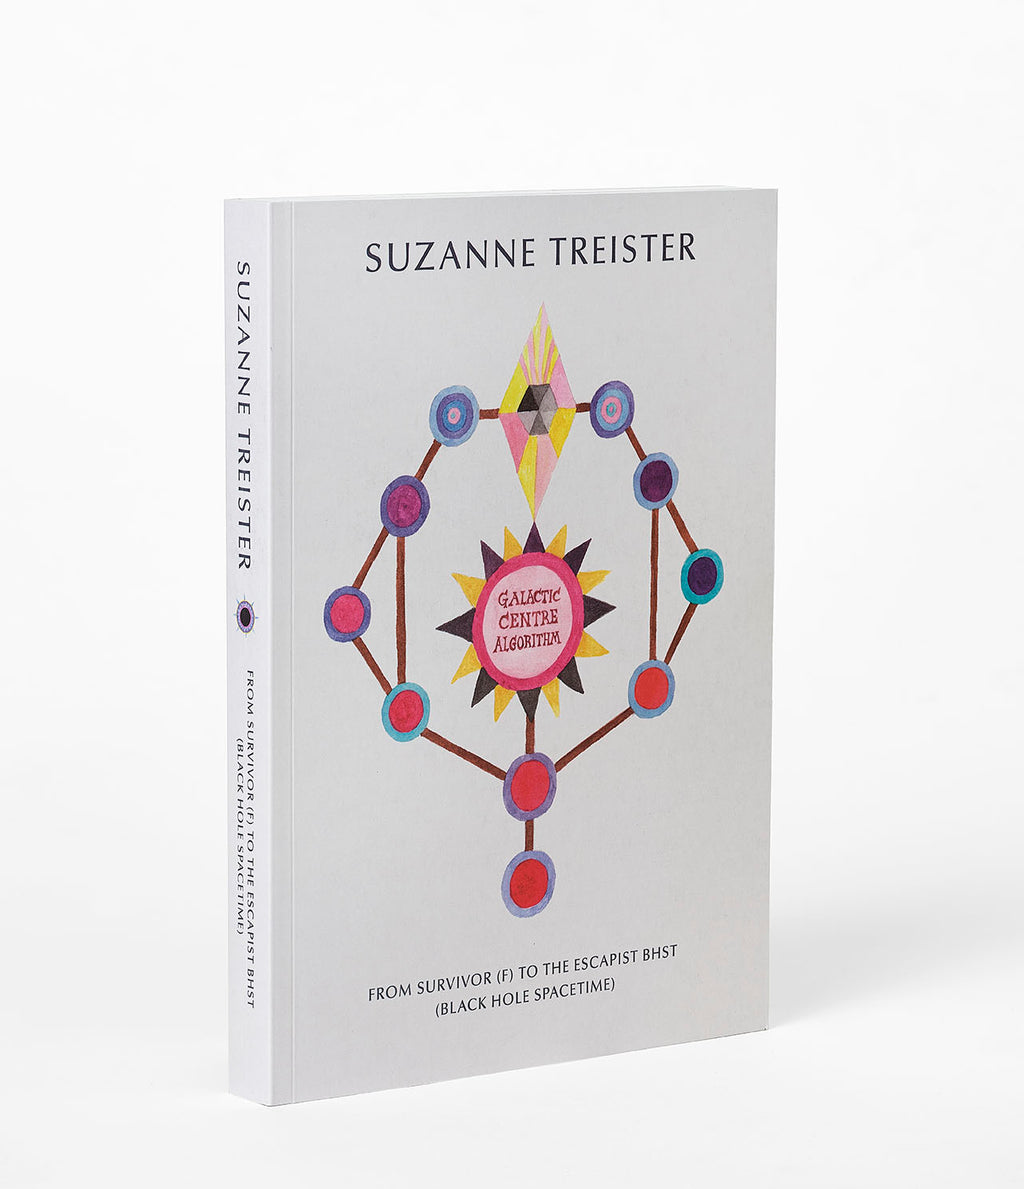 Suzanne Treister: From SURVIVOR (F) To The Escapist BHST (Black Hole Spacetime)